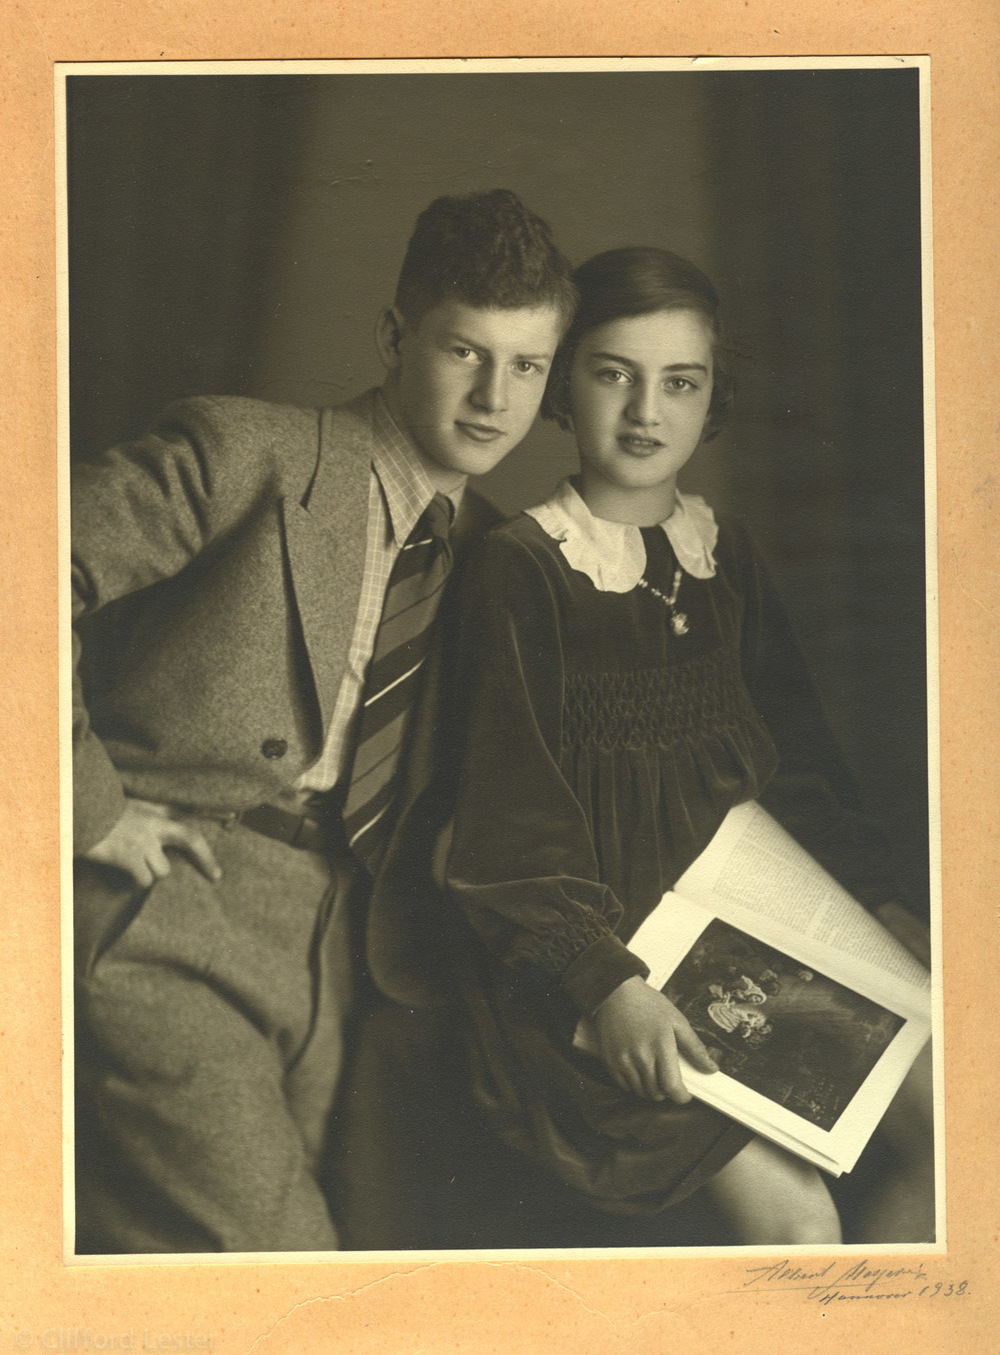 My mother, Ursula, with her brother Ernst, in Hannover, 1938.